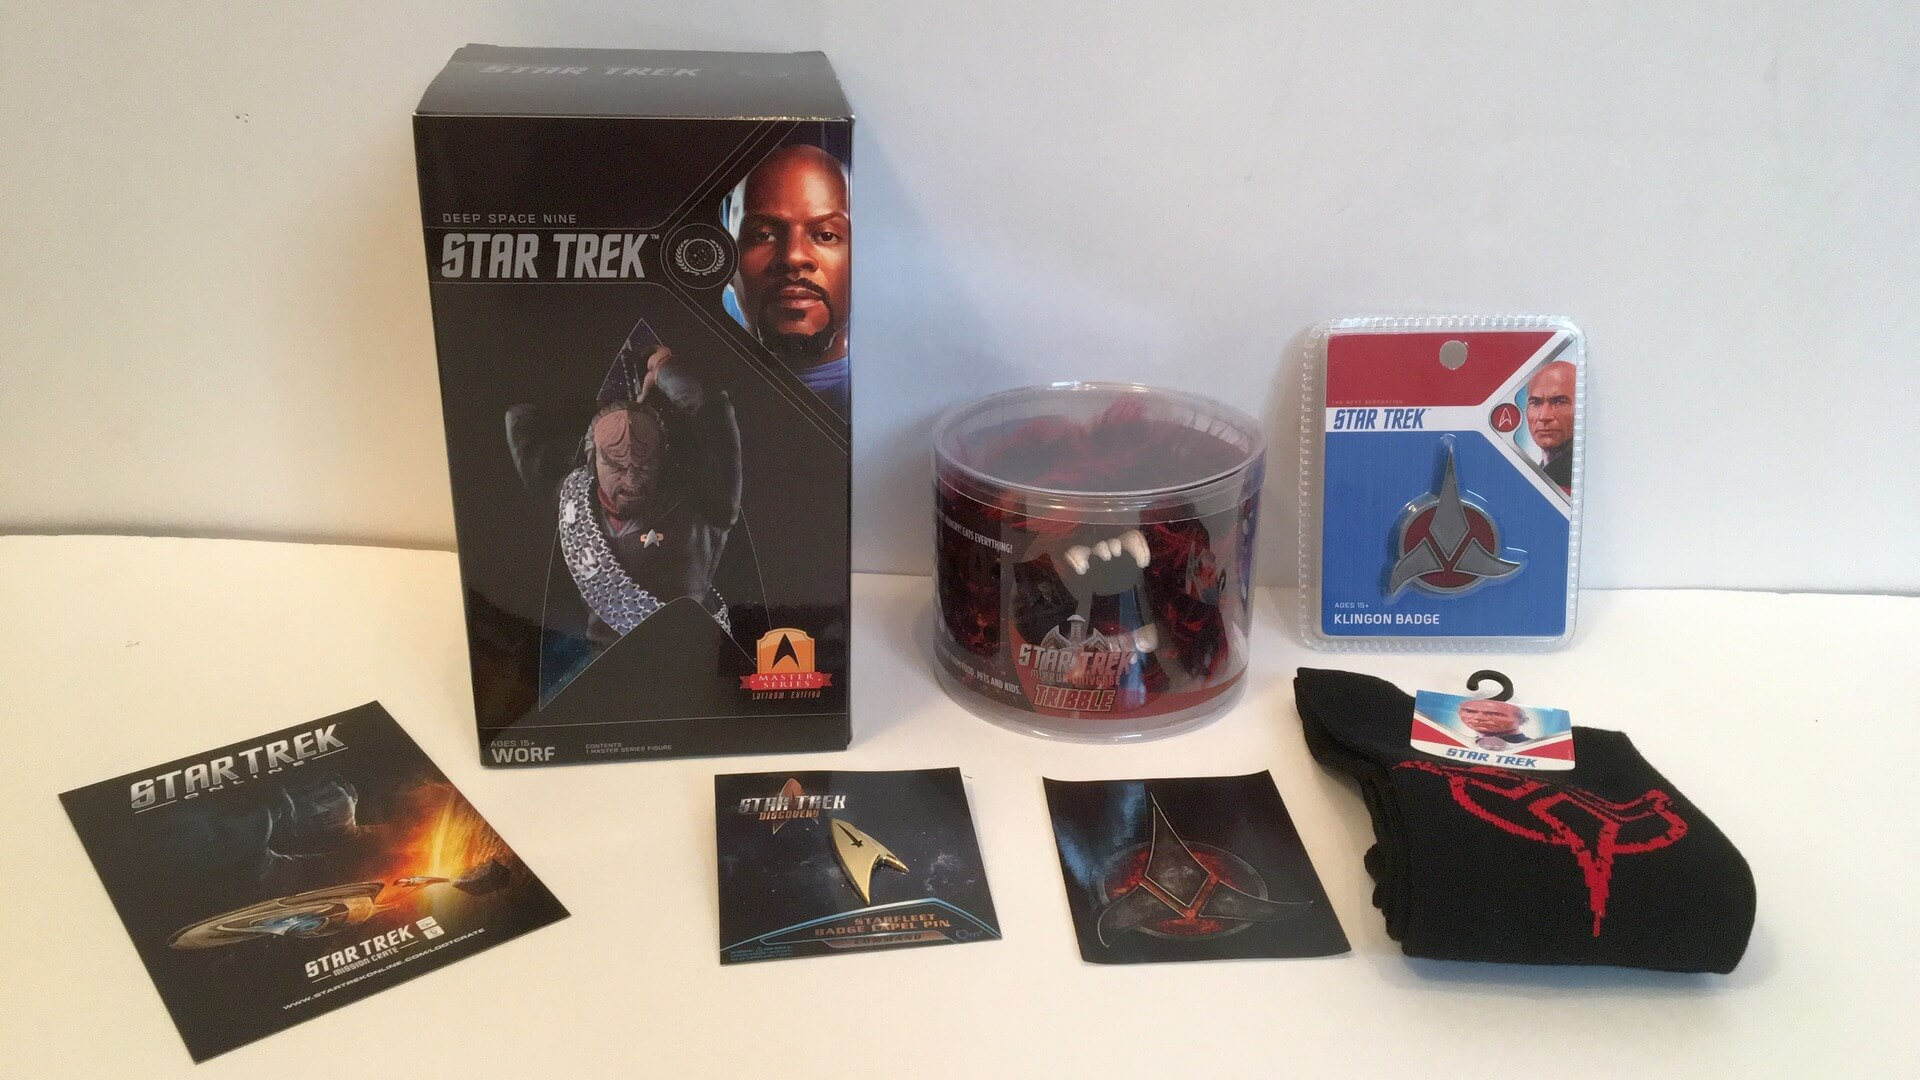 Star Trek Mission Crate: Way of the Warrior - Review